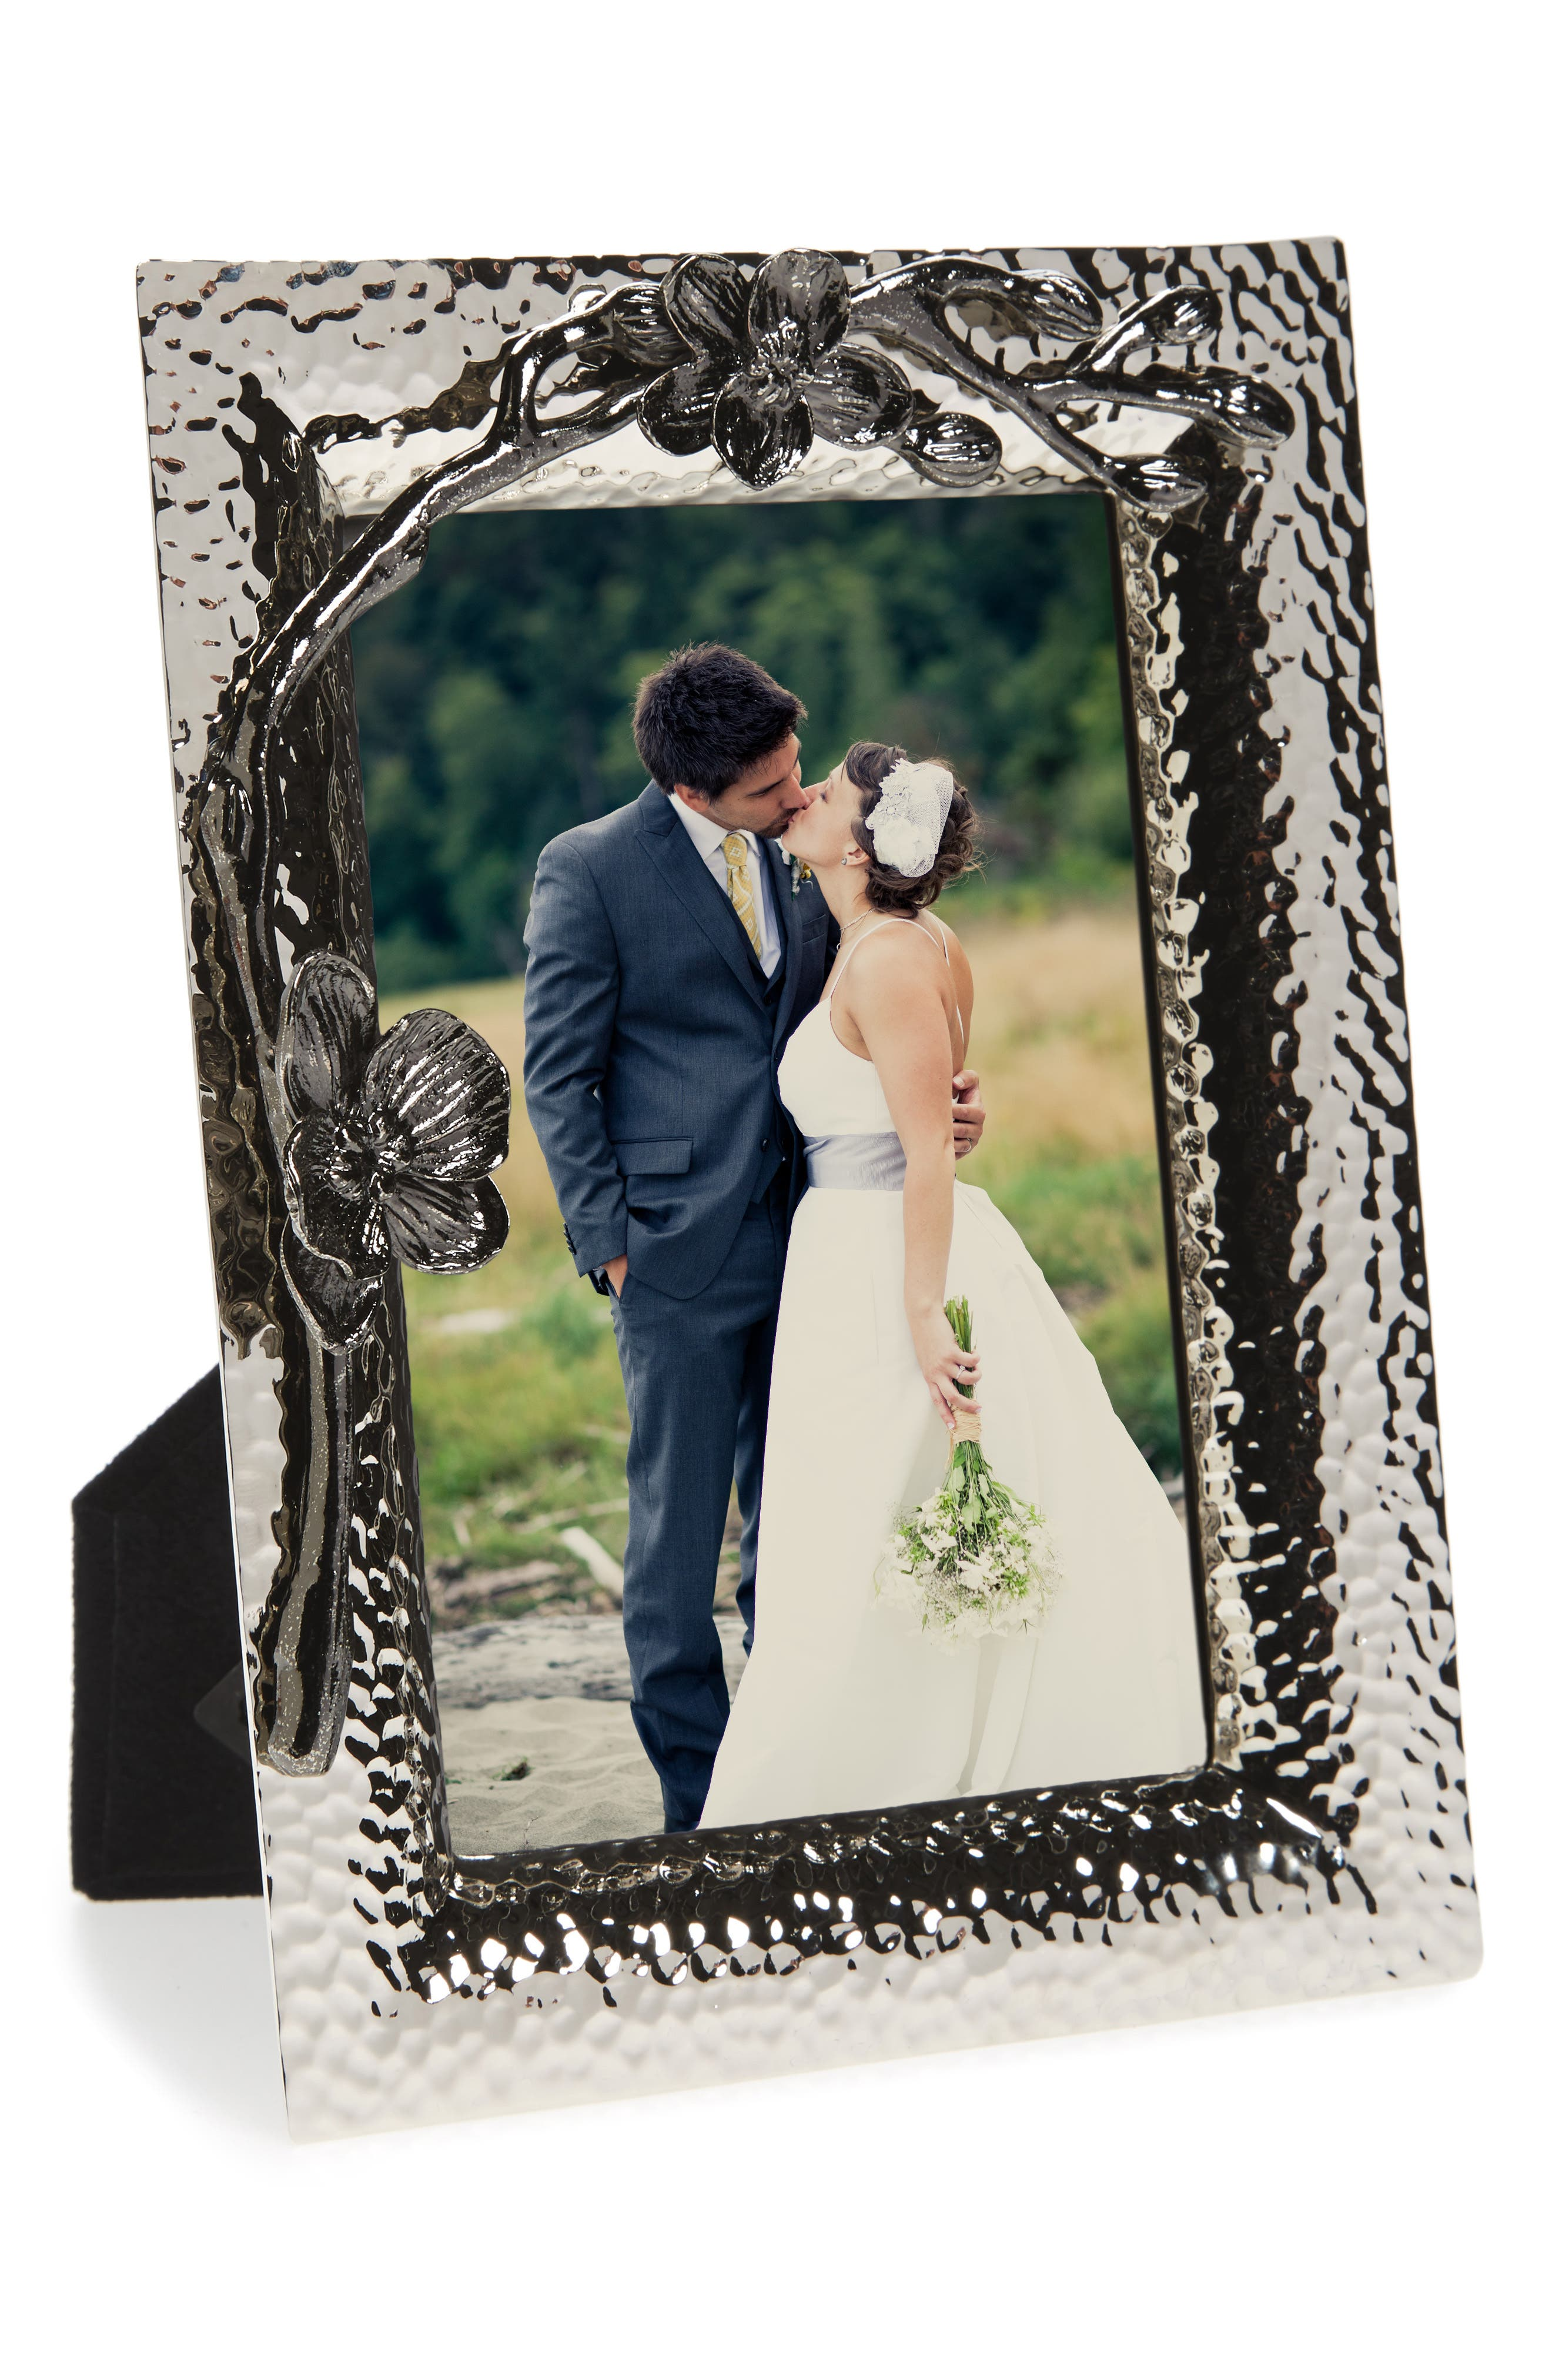 Alternate Image 1 Selected - Michael Aram Black Orchid Picture Frame